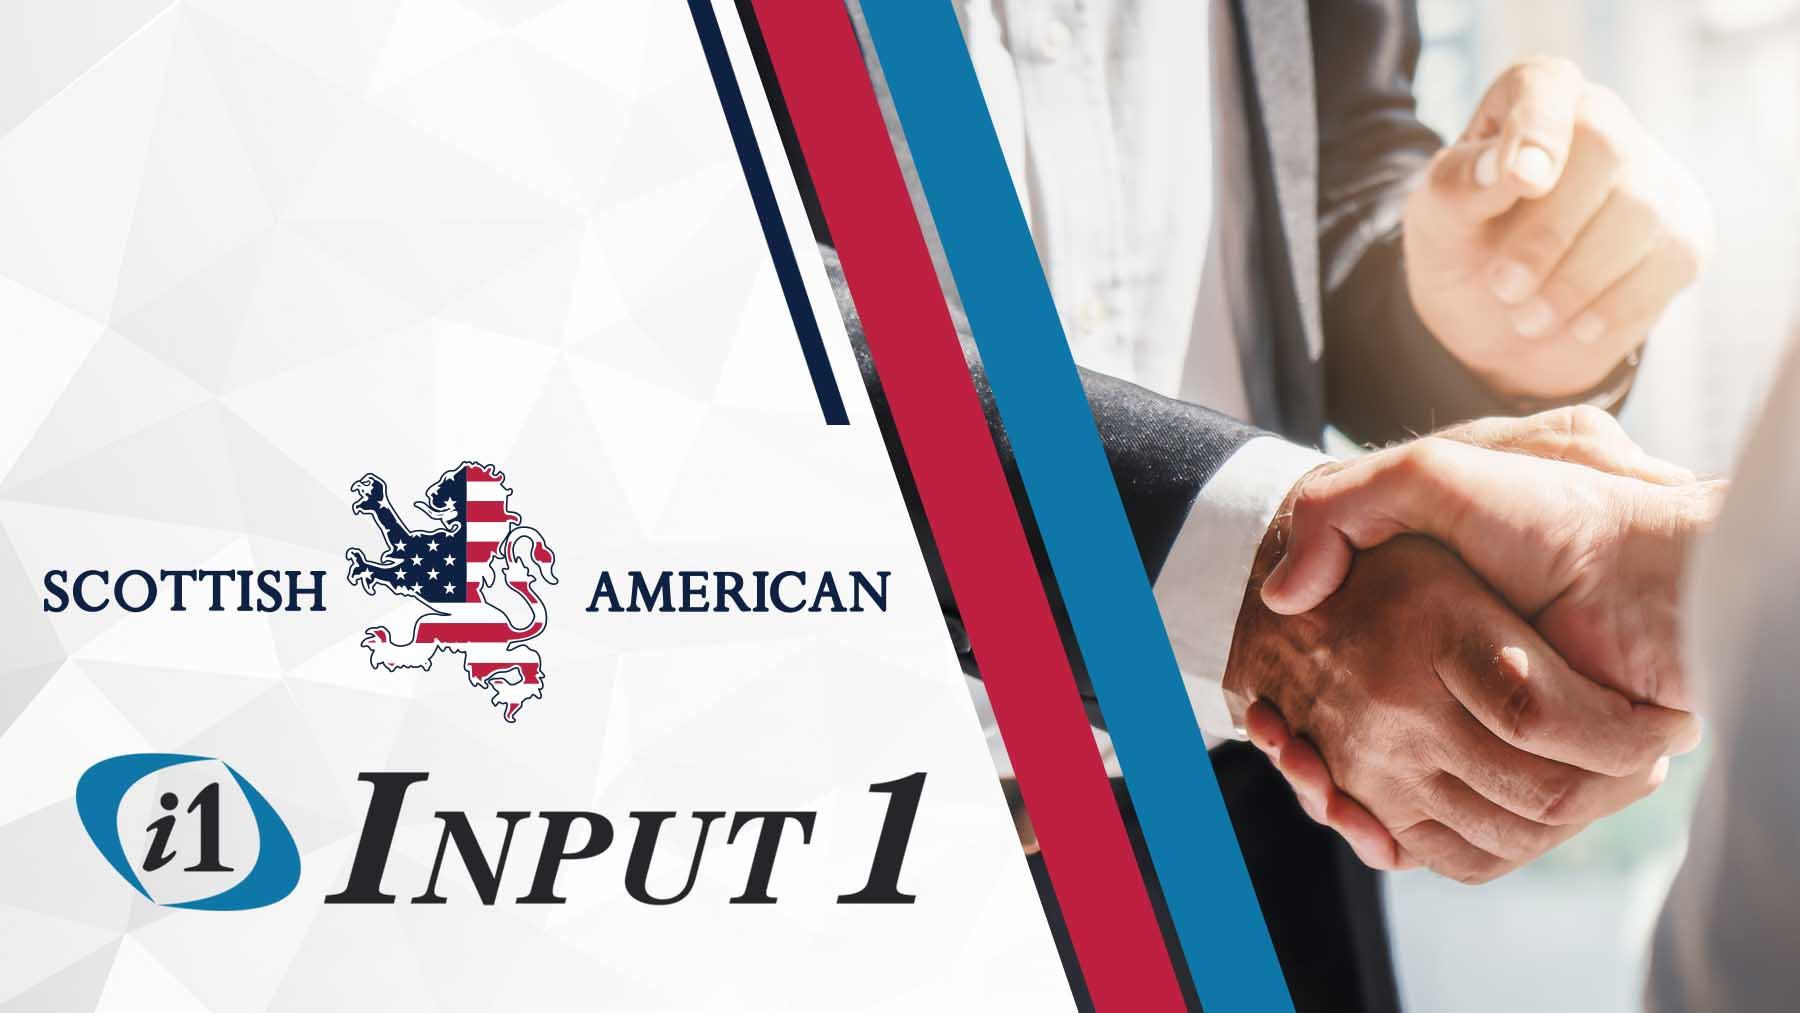 Scottish American Insurance General Agency chooses Input 1 as a servicing partner for its growing Premium Finance Business